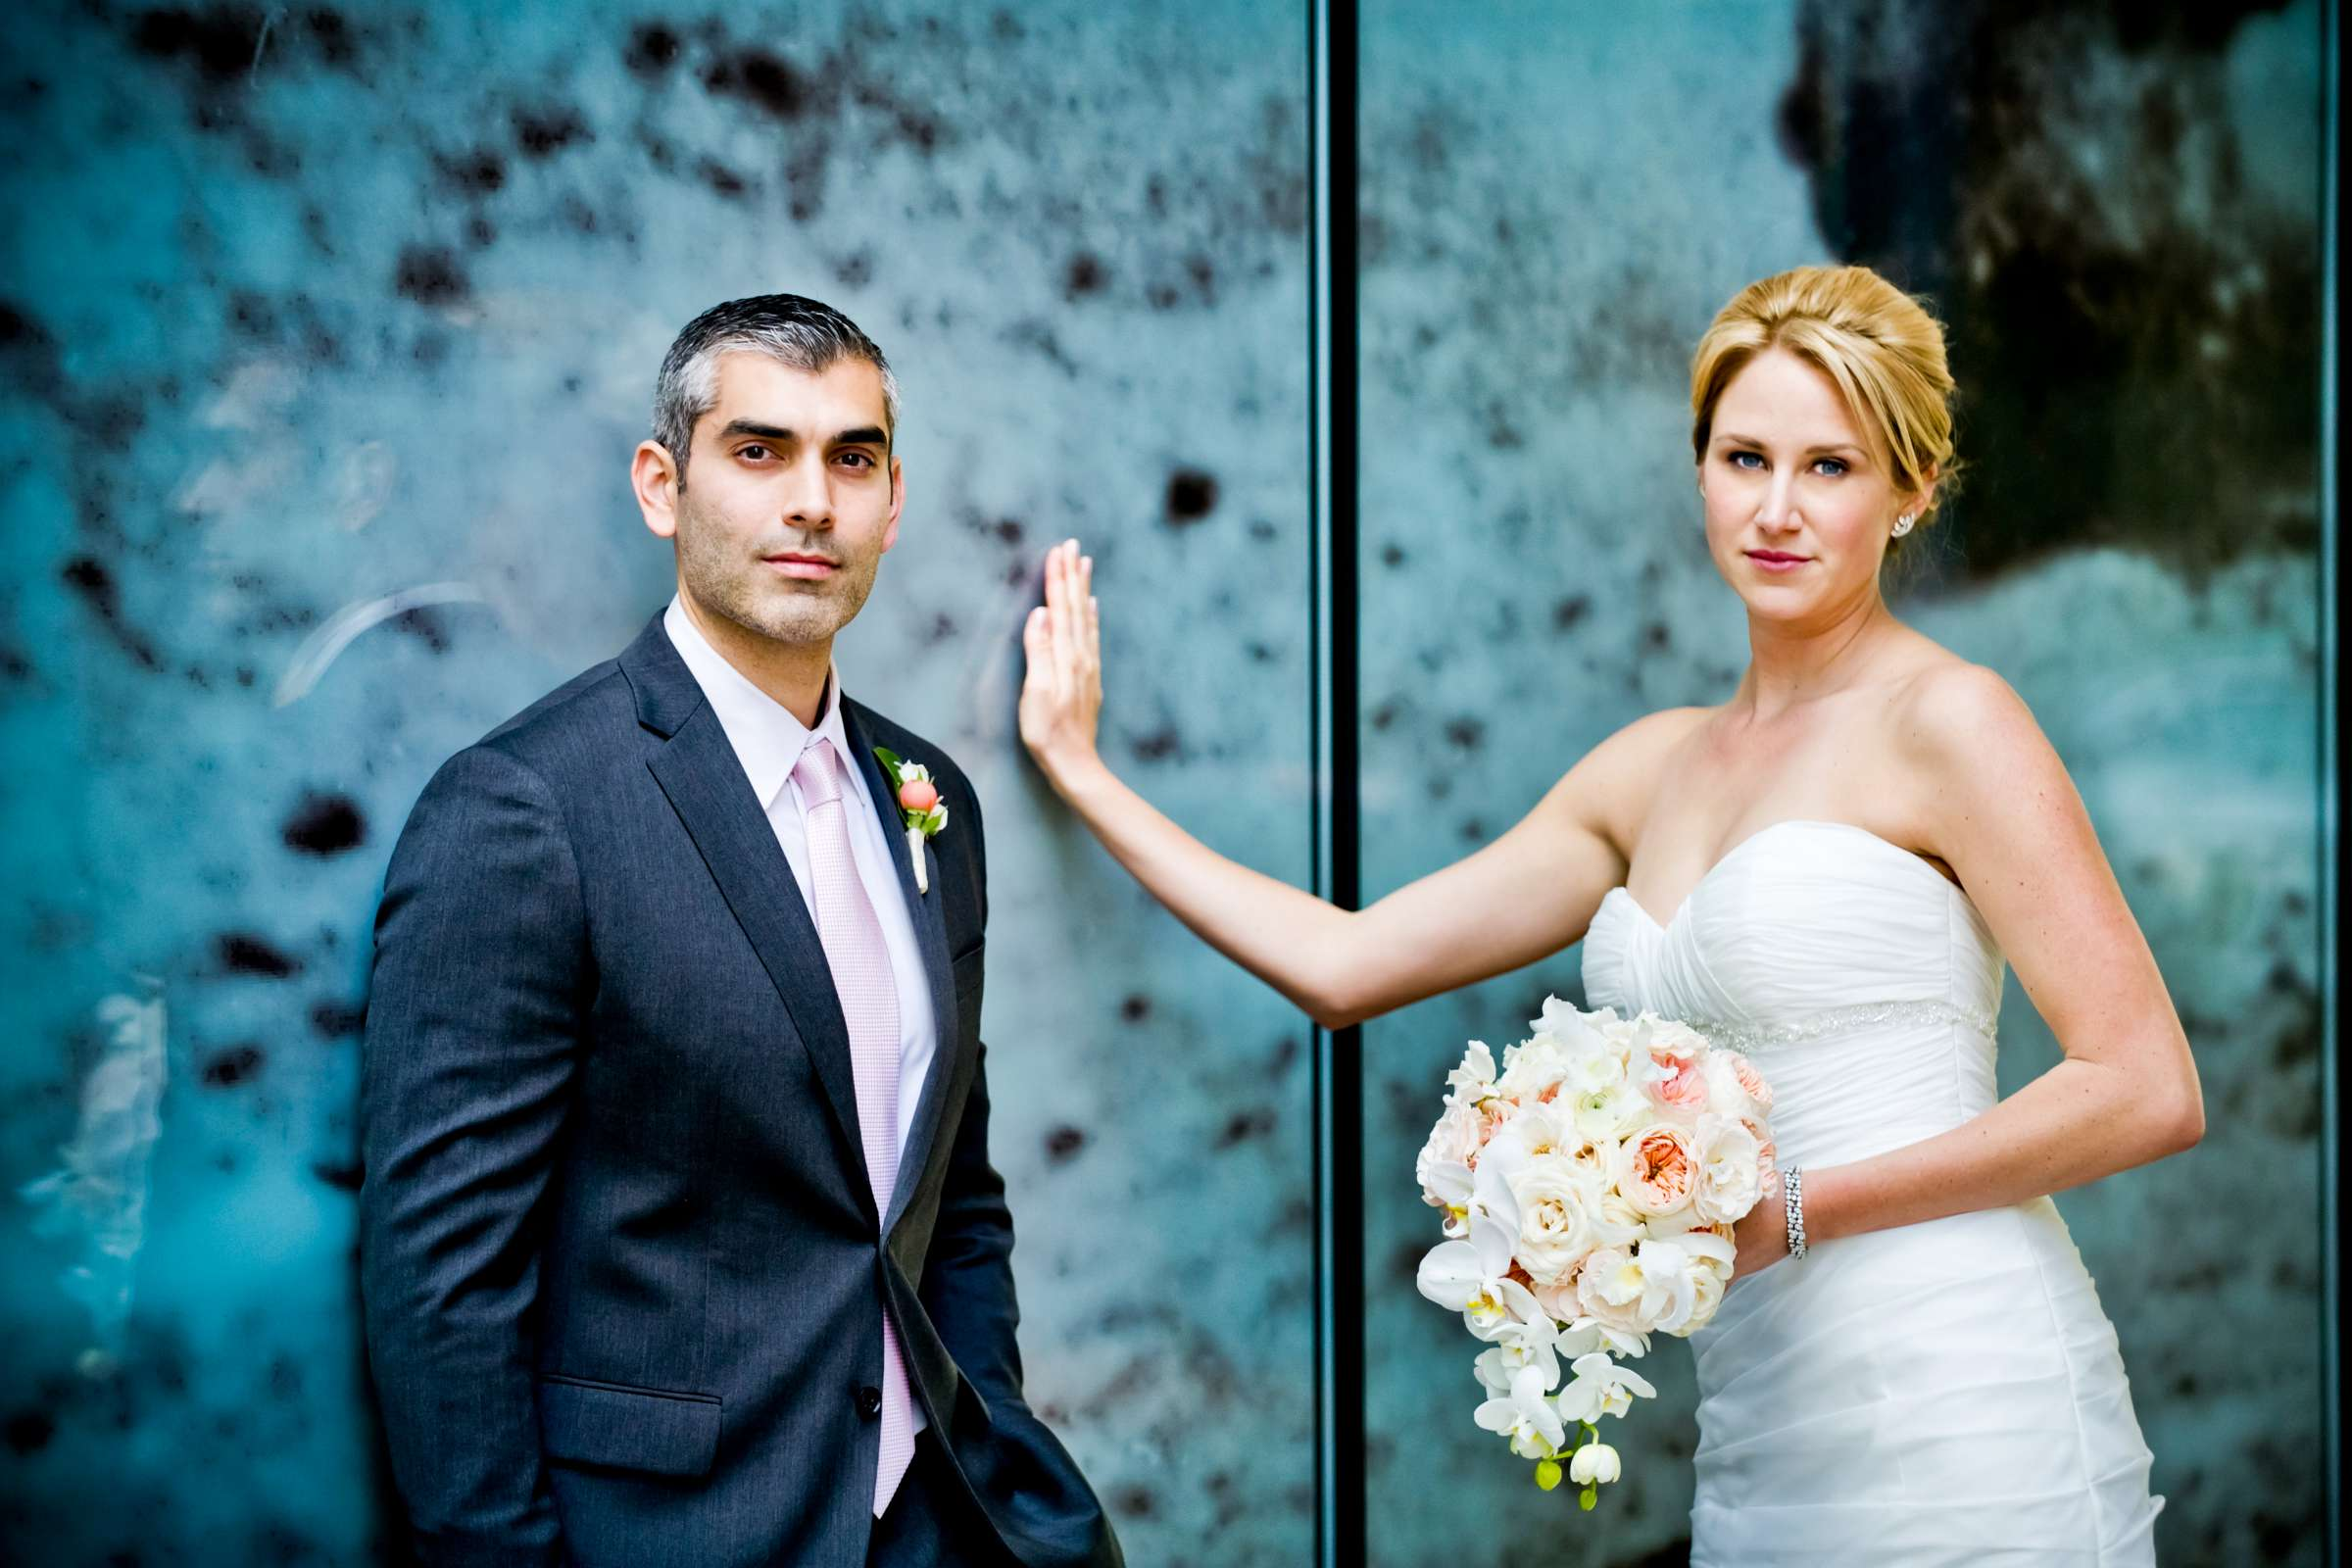 Urban Downtown at Ultimate Skybox Wedding, Chelsea and Frank Wedding Photo #2 by True Photography